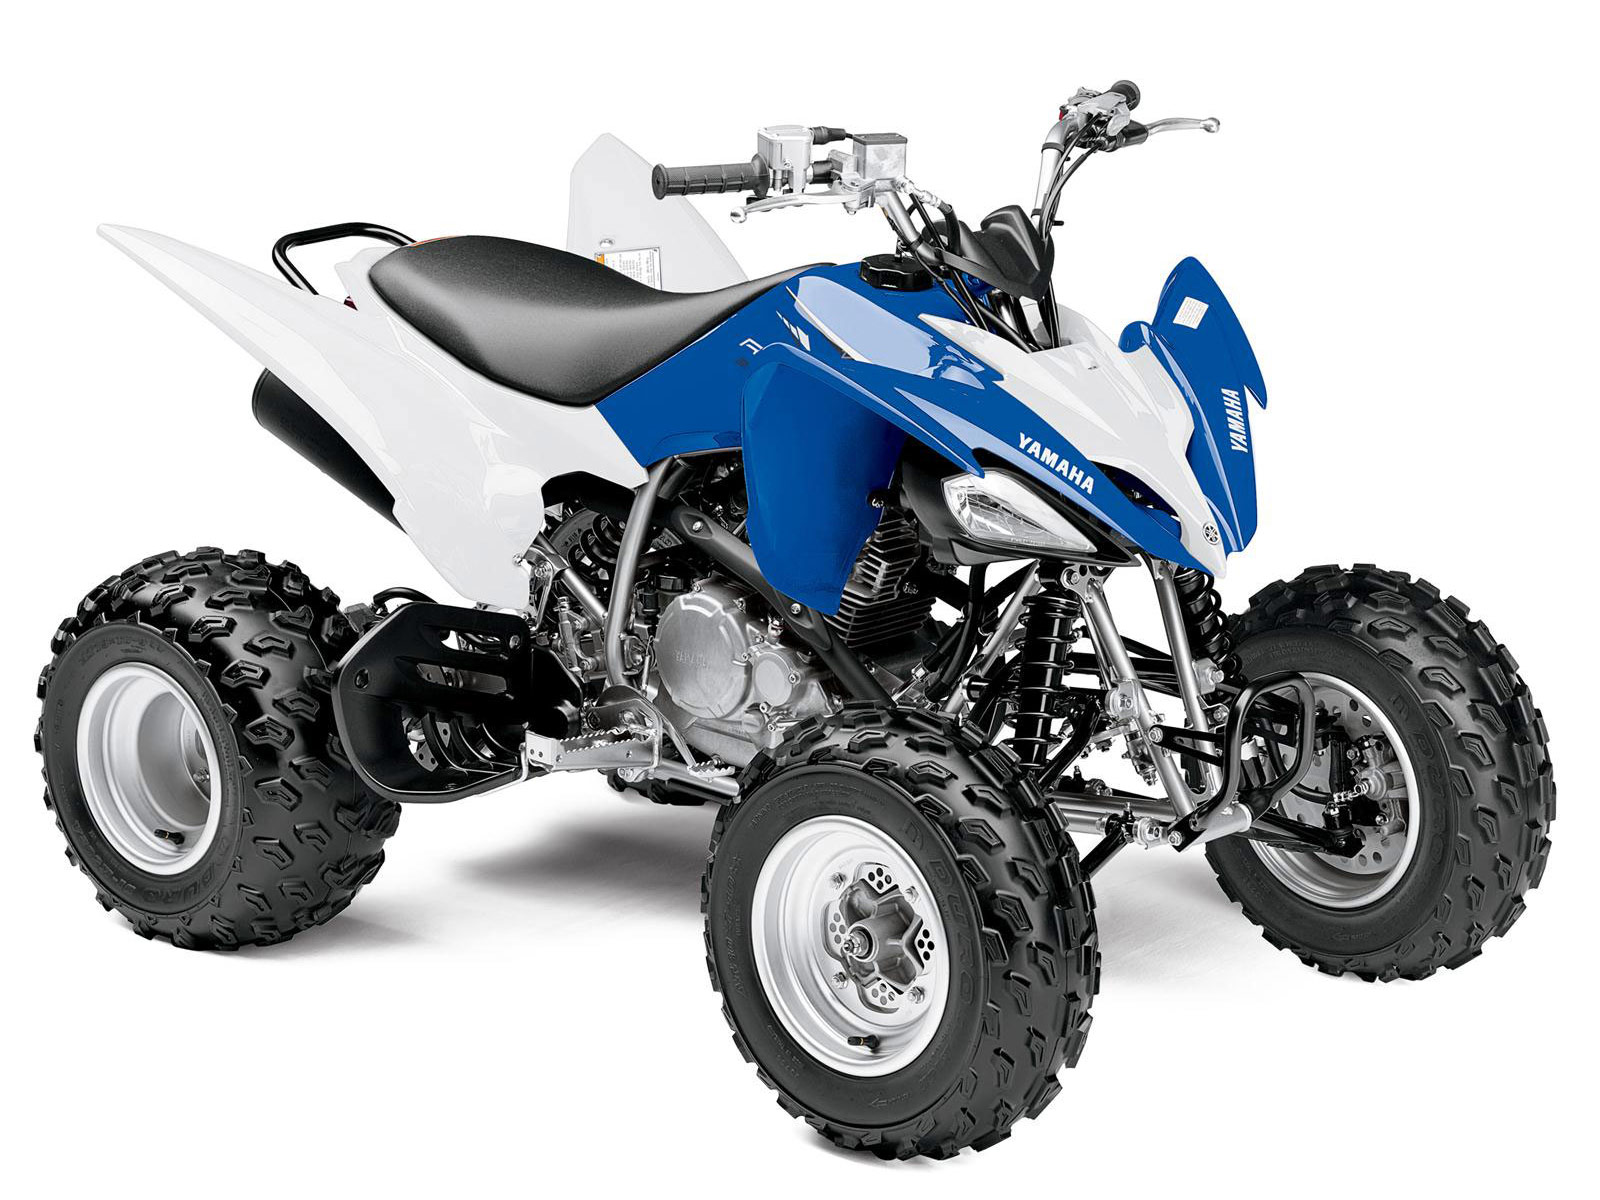 raptor 250 08 wiring diagram wiring libraryraptor 250 2013 yamaha atv pictures specifications [ 1600 x 1200 Pixel ]